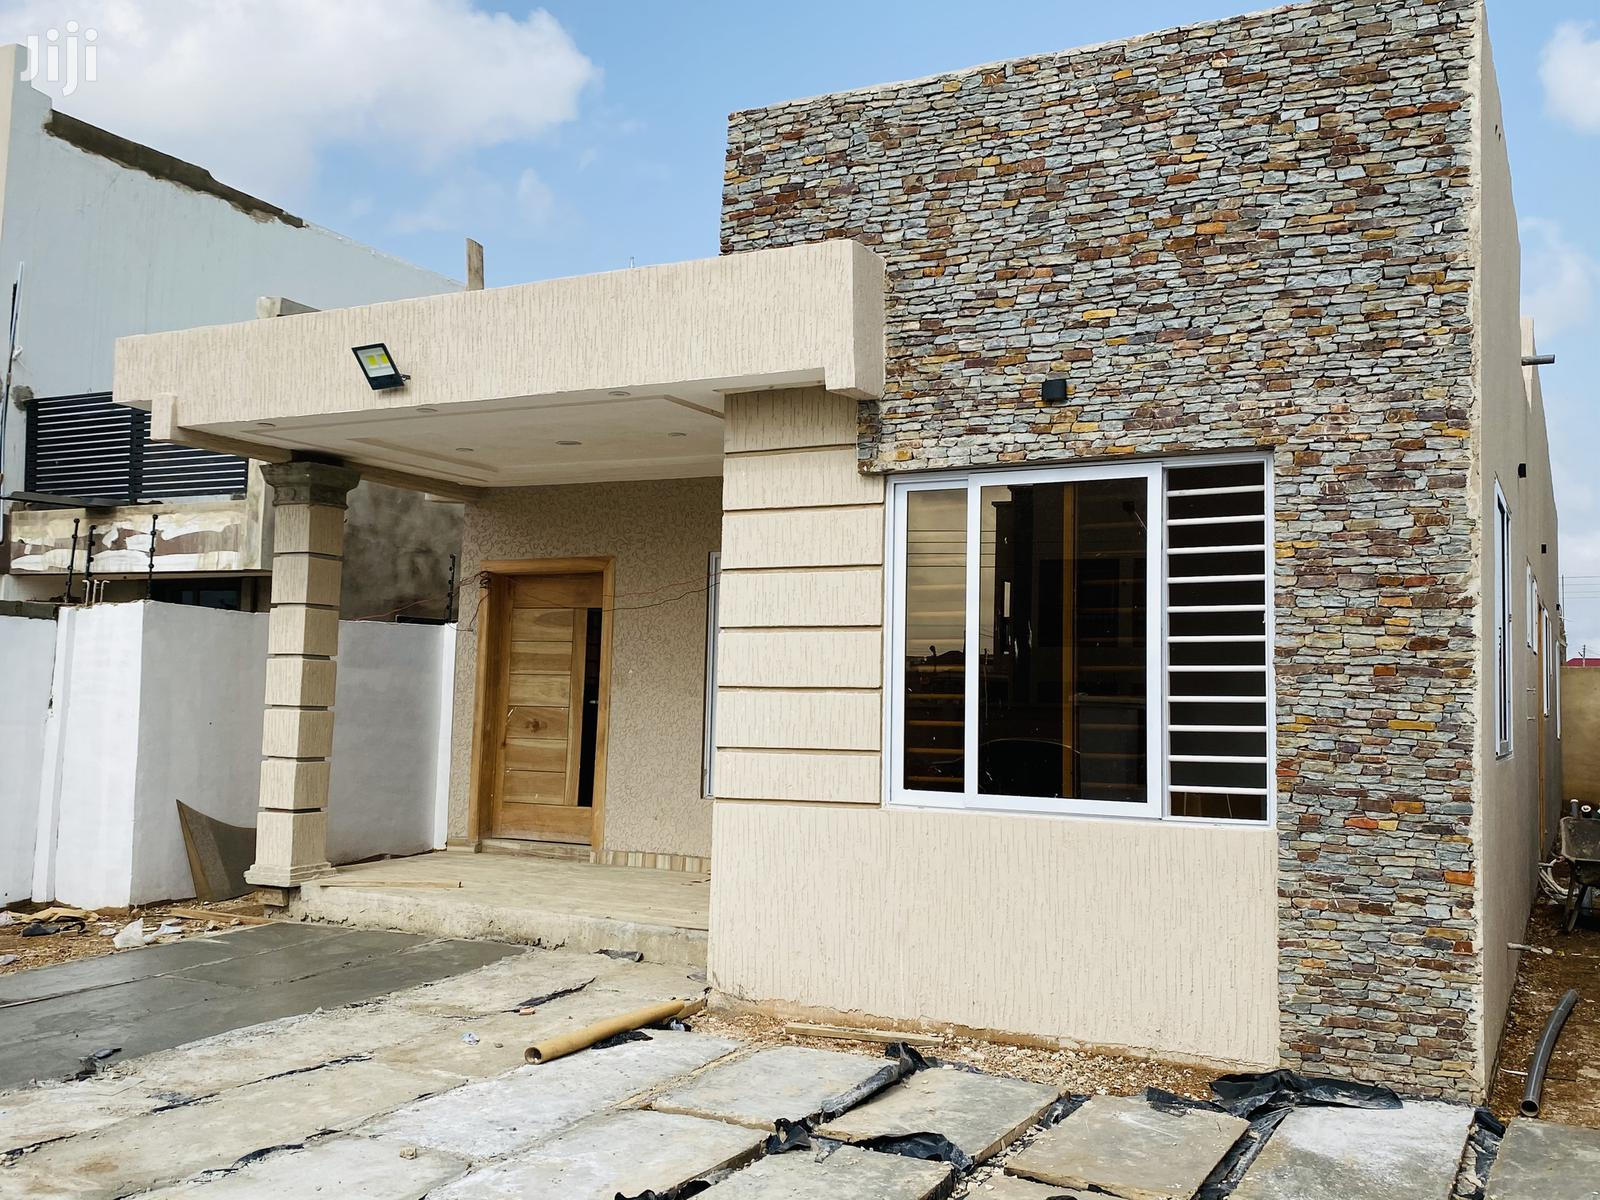 3 Bedroom House Selling At East Legon Hills | Houses & Apartments For Sale for sale in East Legon, Greater Accra, Ghana